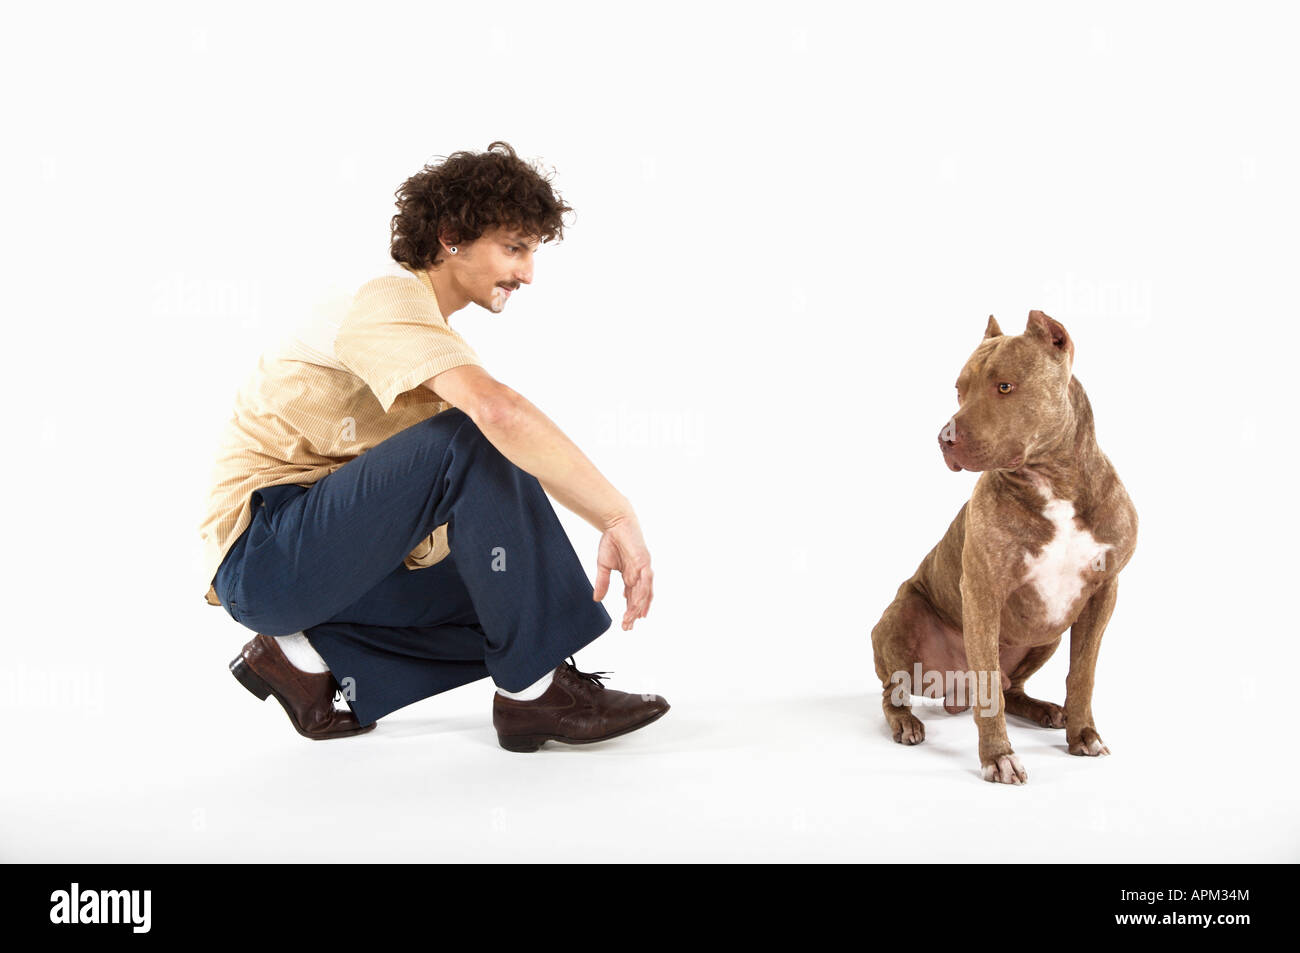 Owner with Pitbull dog - Stock Image